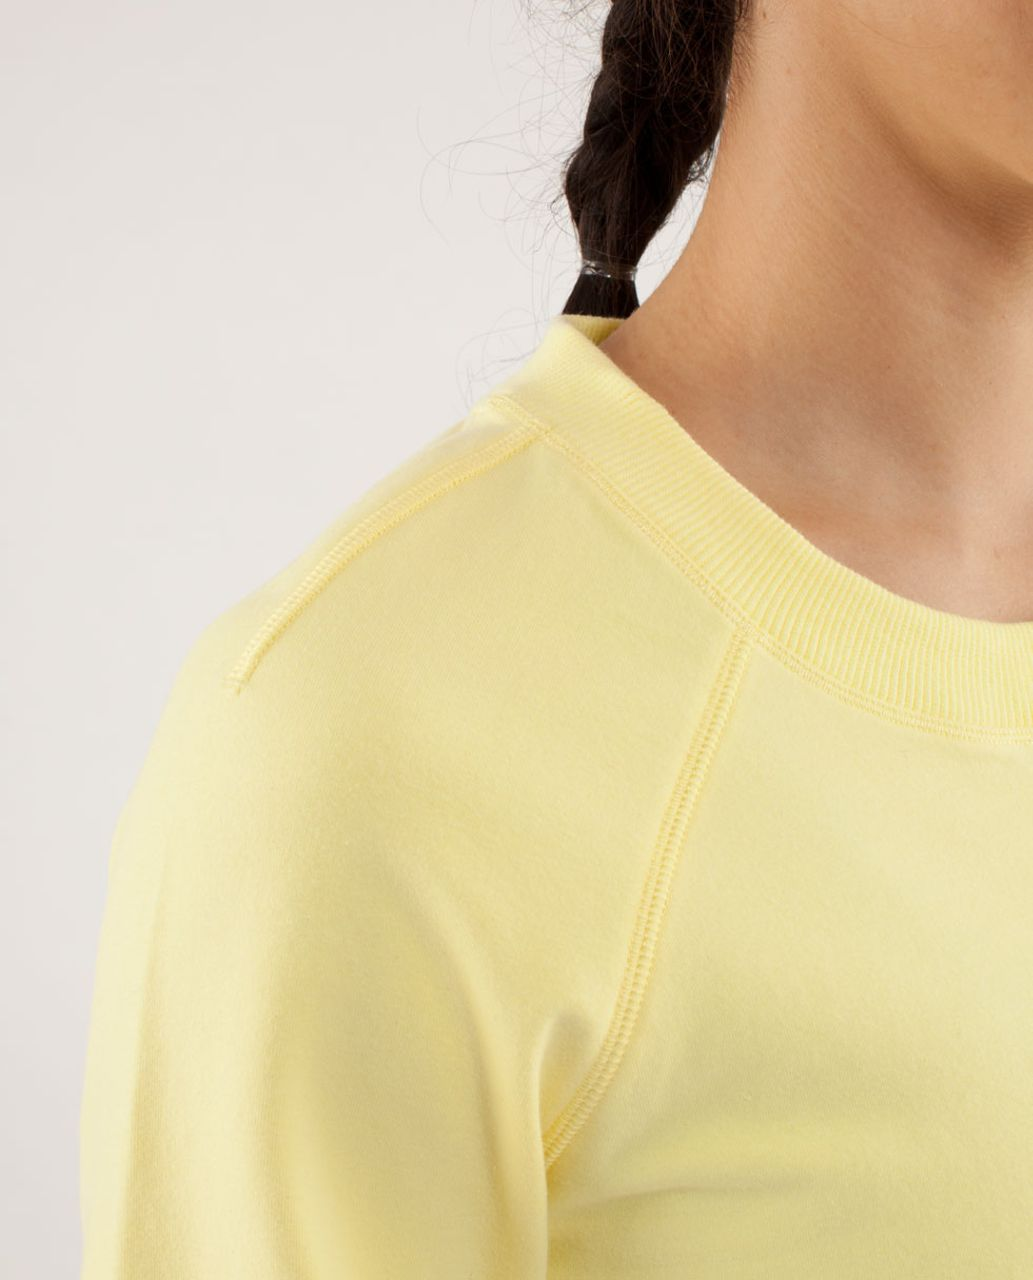 Lululemon Rejuvenate Pullover - Mellow Lemon